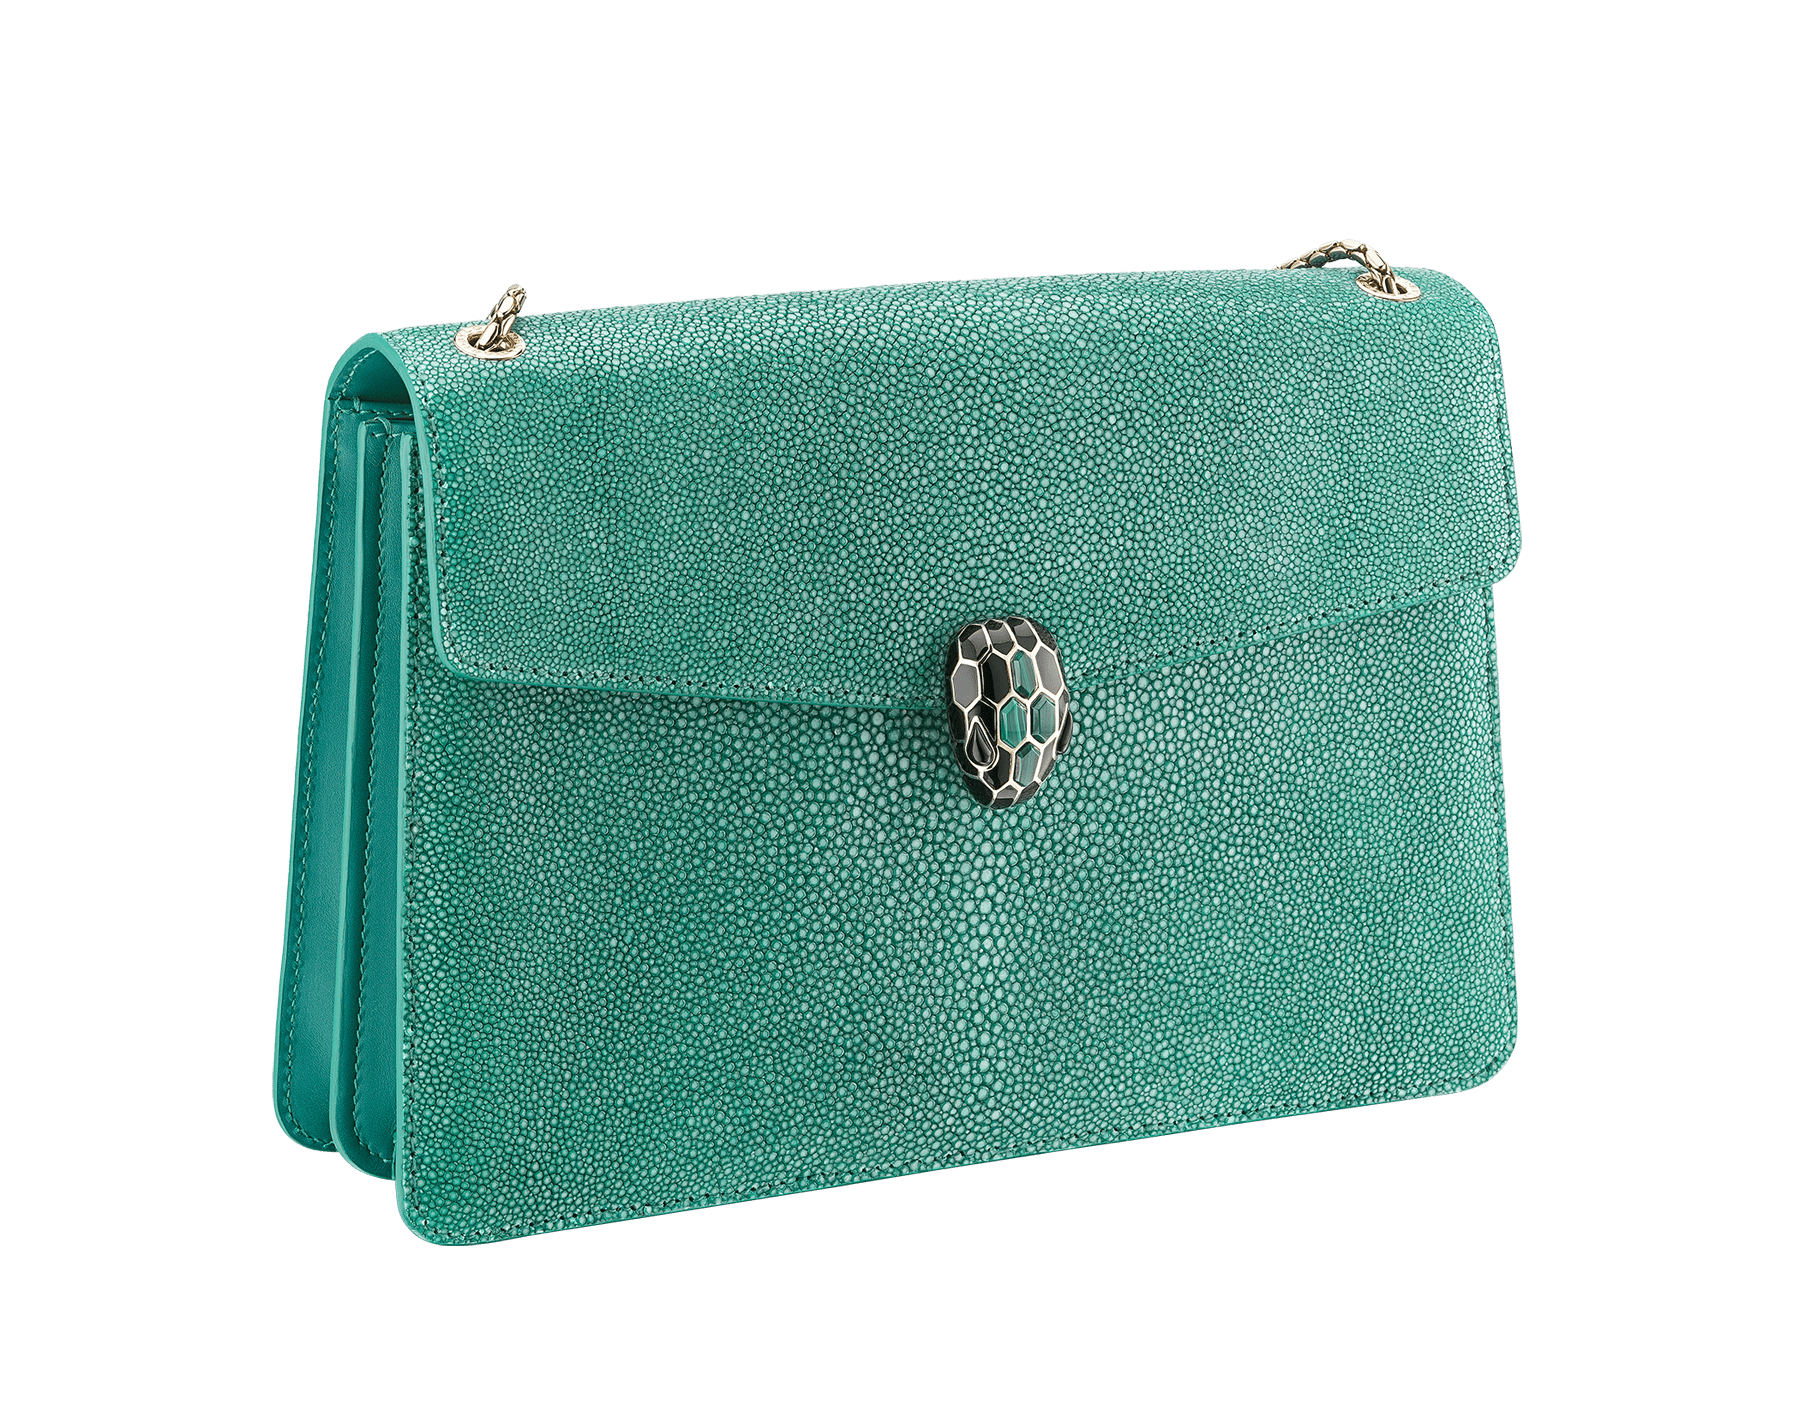 """Serpenti Forever"" shoulder bag in emerald green galuchat skin. Iconic snake head closure in light gold plated brass enriched with black enamel, malachite scales and black onyx eyes. 289026 image 2"